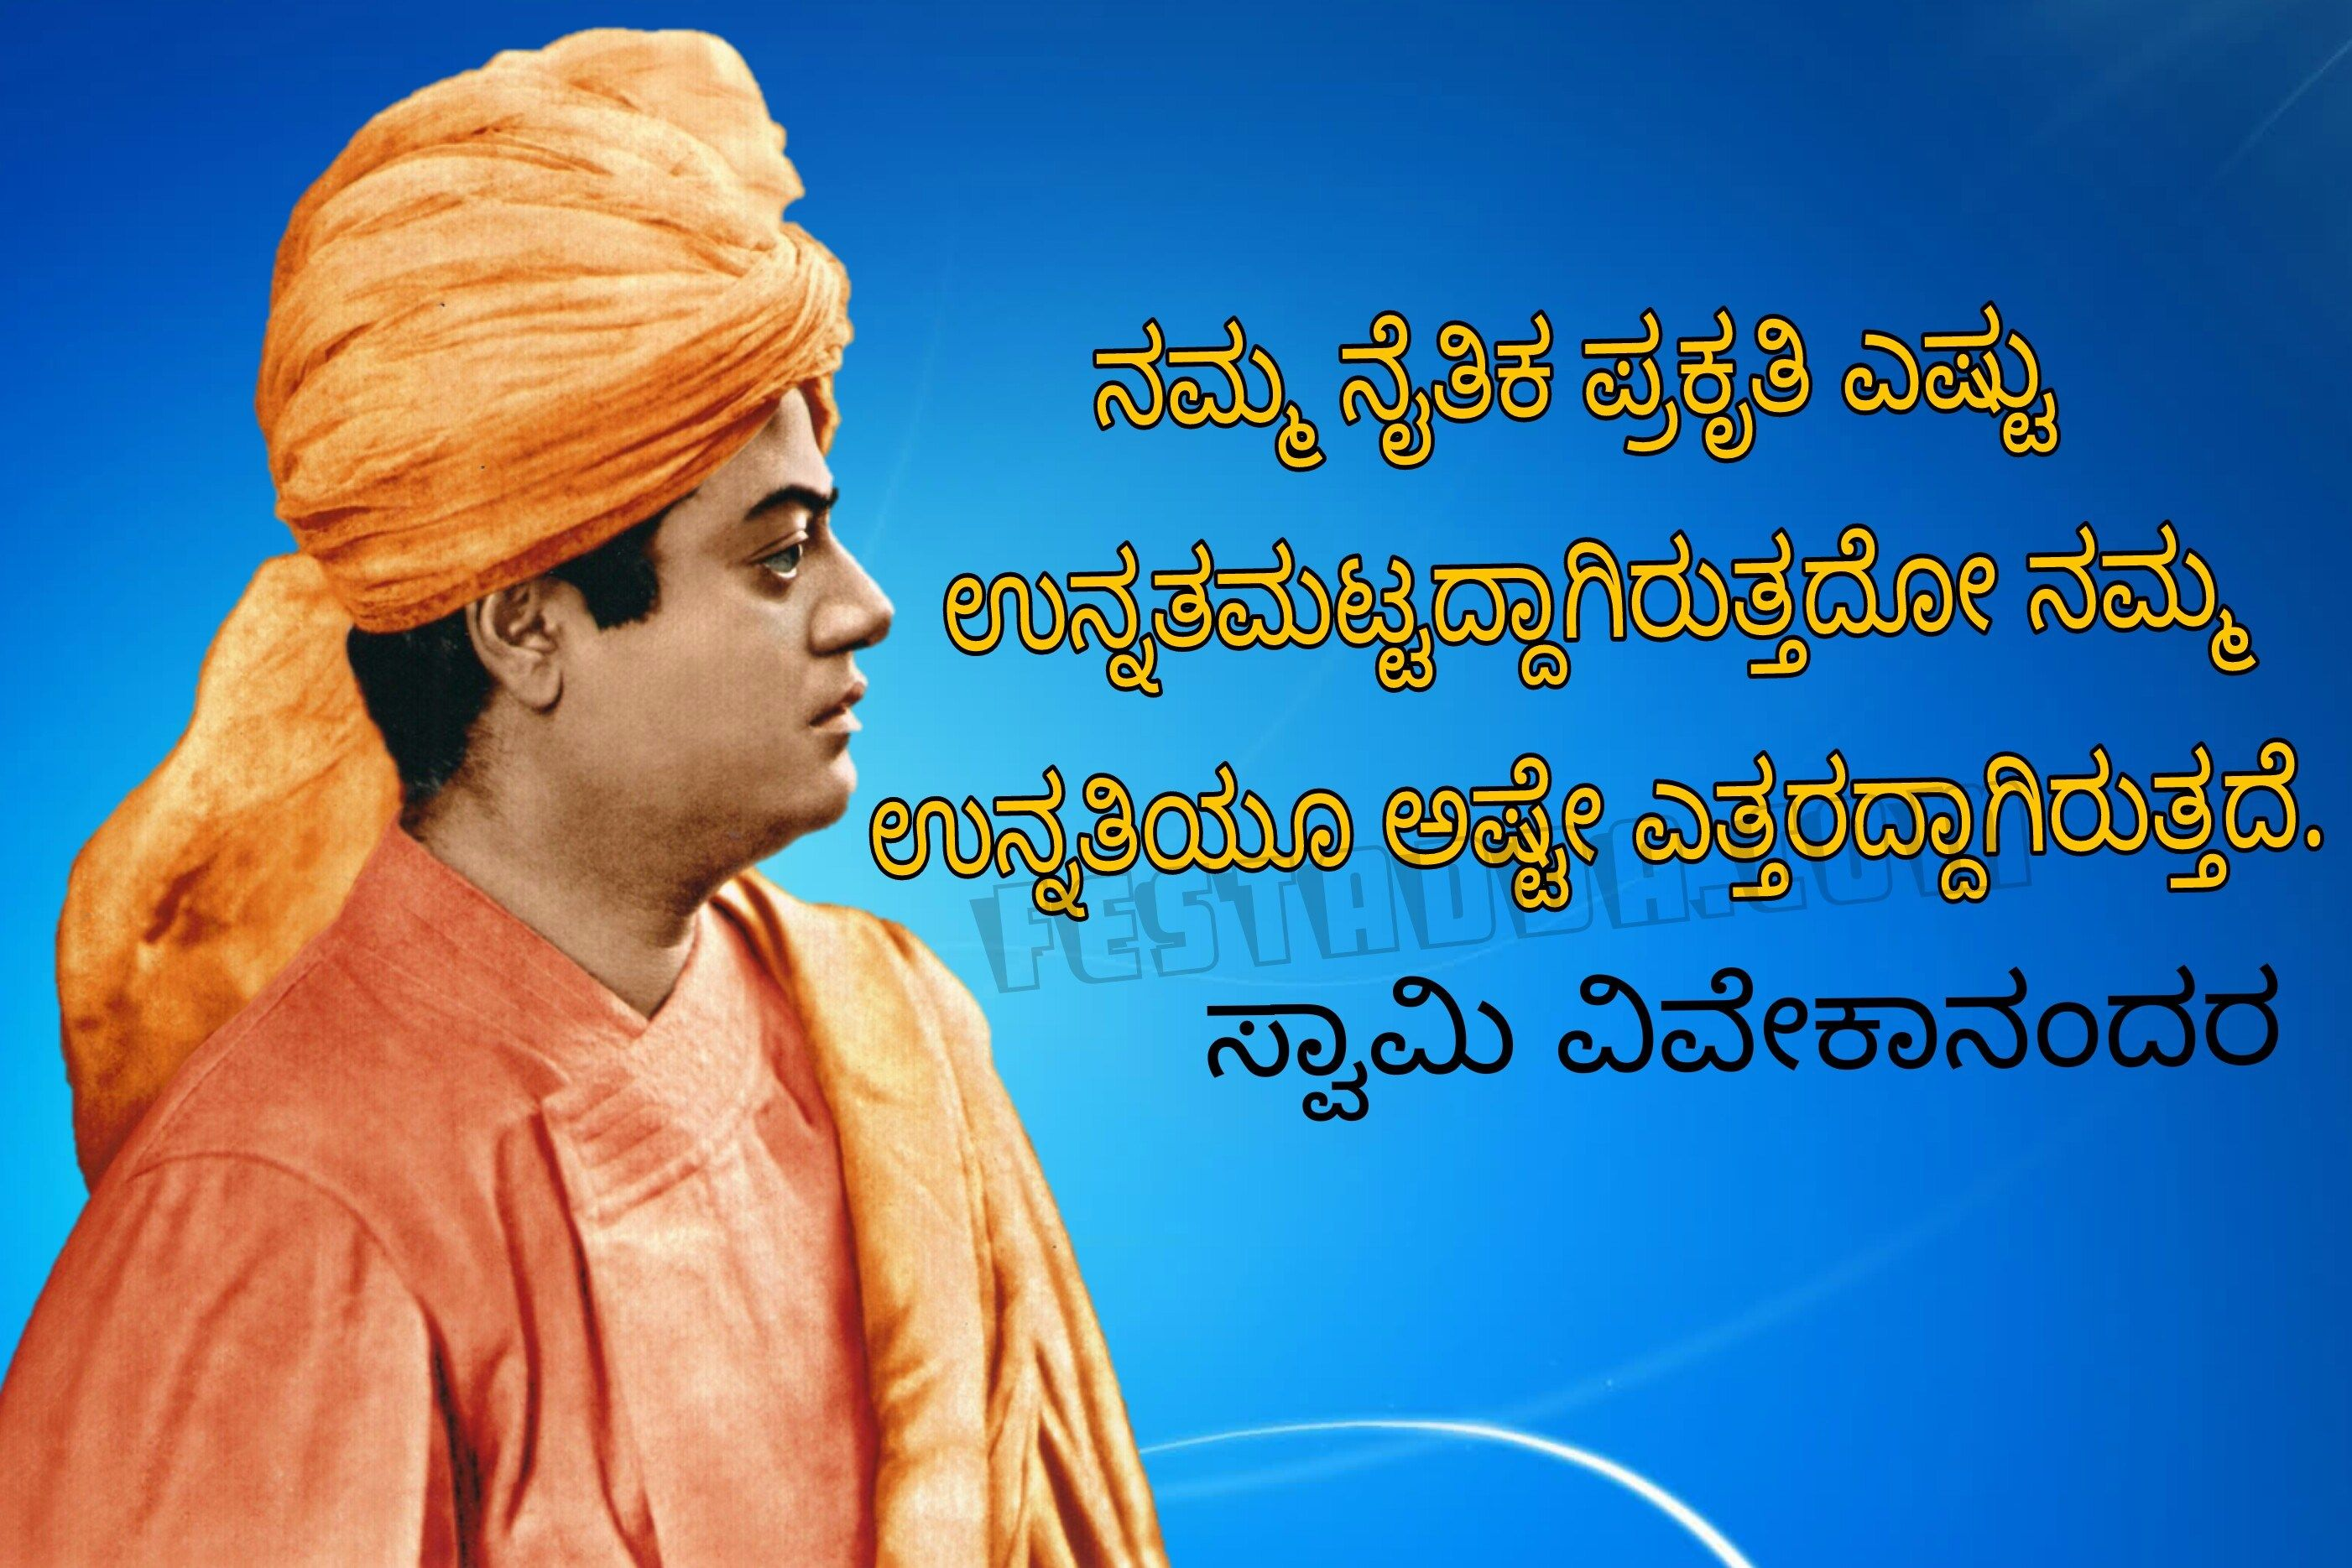 best and latest swami vivekananda quotes in telugu for students